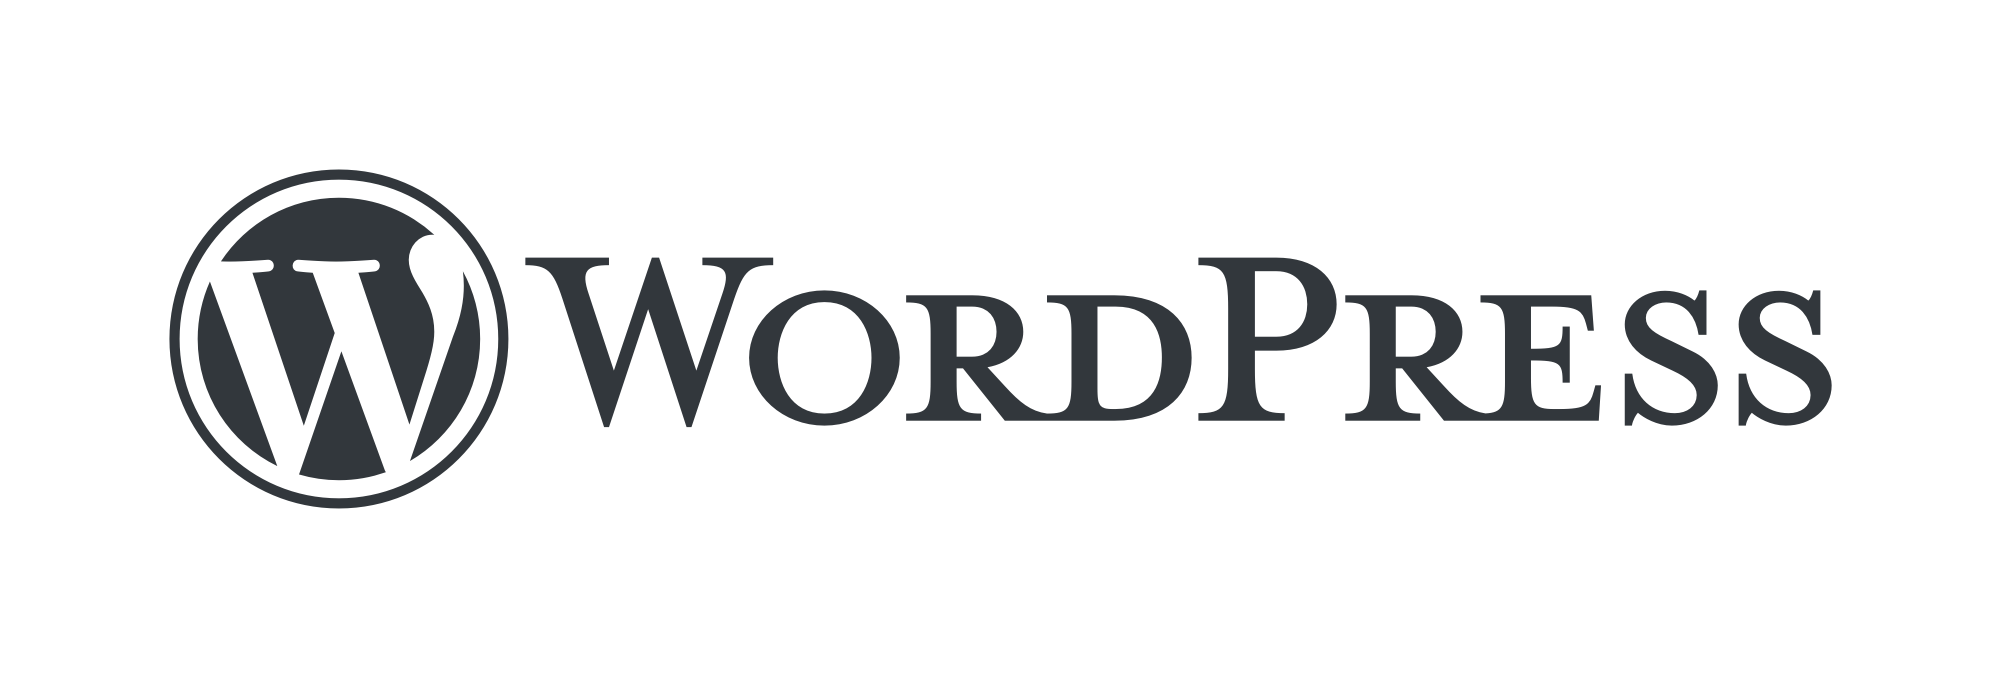 WordPress-logotype-standard